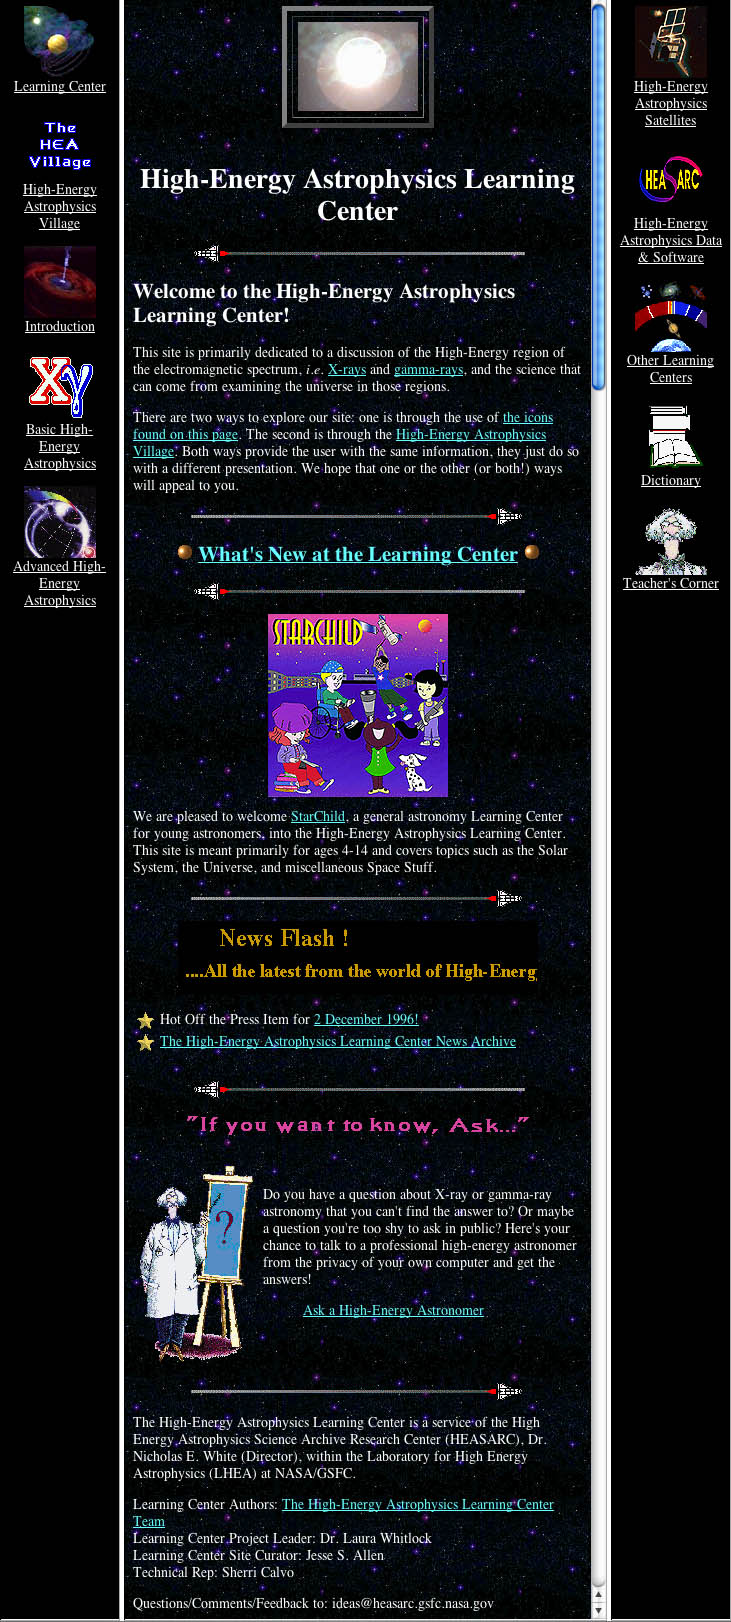 The original High-Energy Astrophysics Learning Center home page.